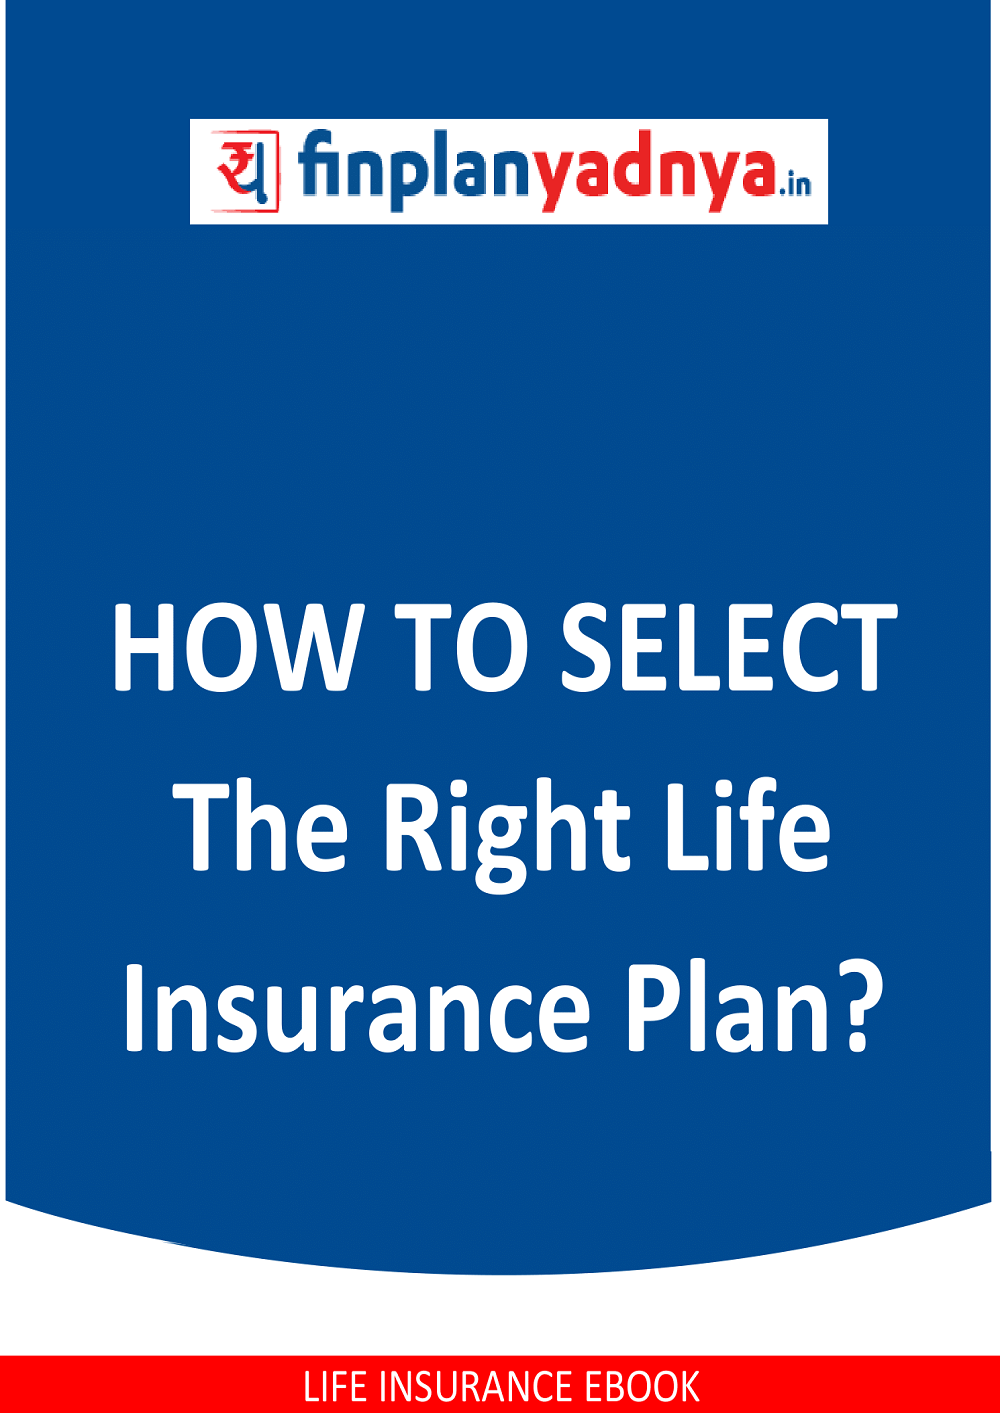 This e-book offers a thorough analysis to help the investors in choosing the right life insurance policy. It highlights the factors that should be checked before buying a life insurance policy. ✔ Detailed Research ✔ Quality Reports